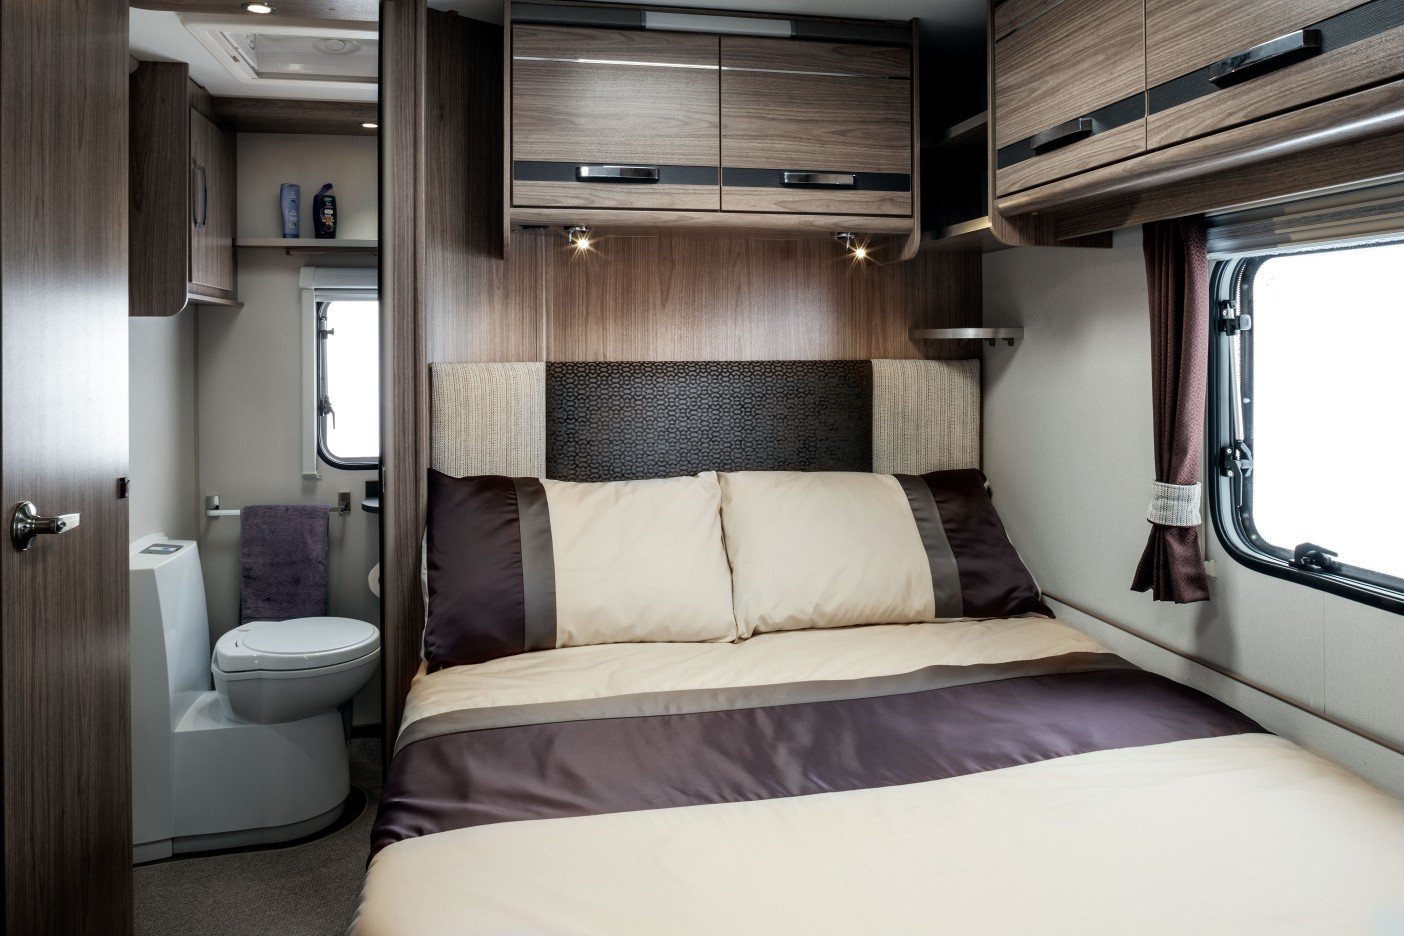 Freedom Headboard Snuglux Caravan Motorhome And Boat Bedding From Freedom Is